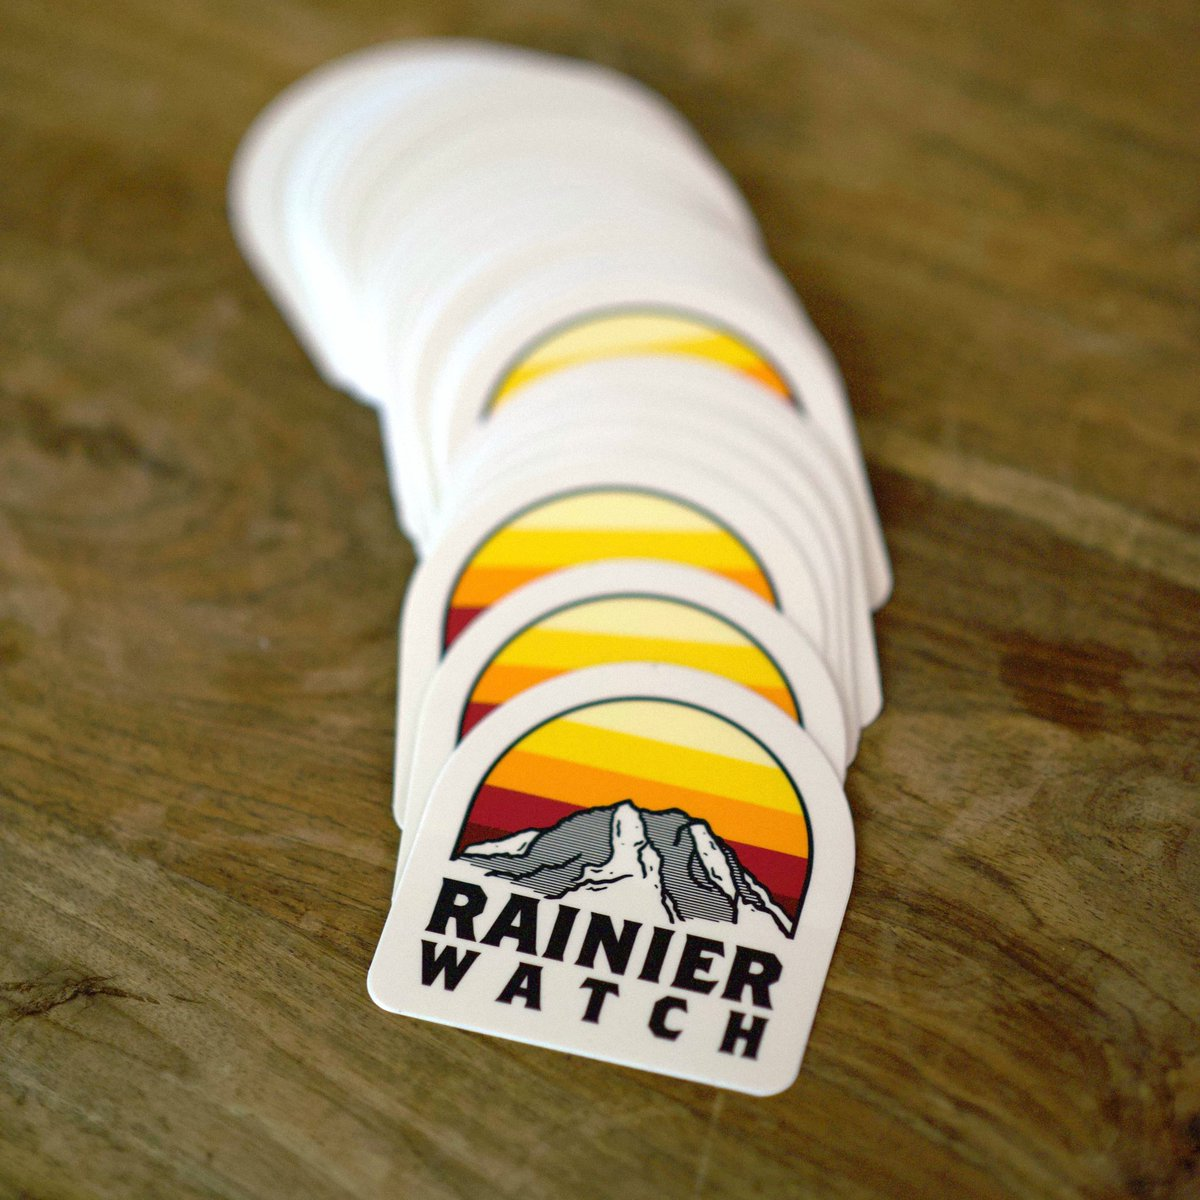 New rainier watch stickers that are now live on the rw shop printed by diecutstickersdotcom